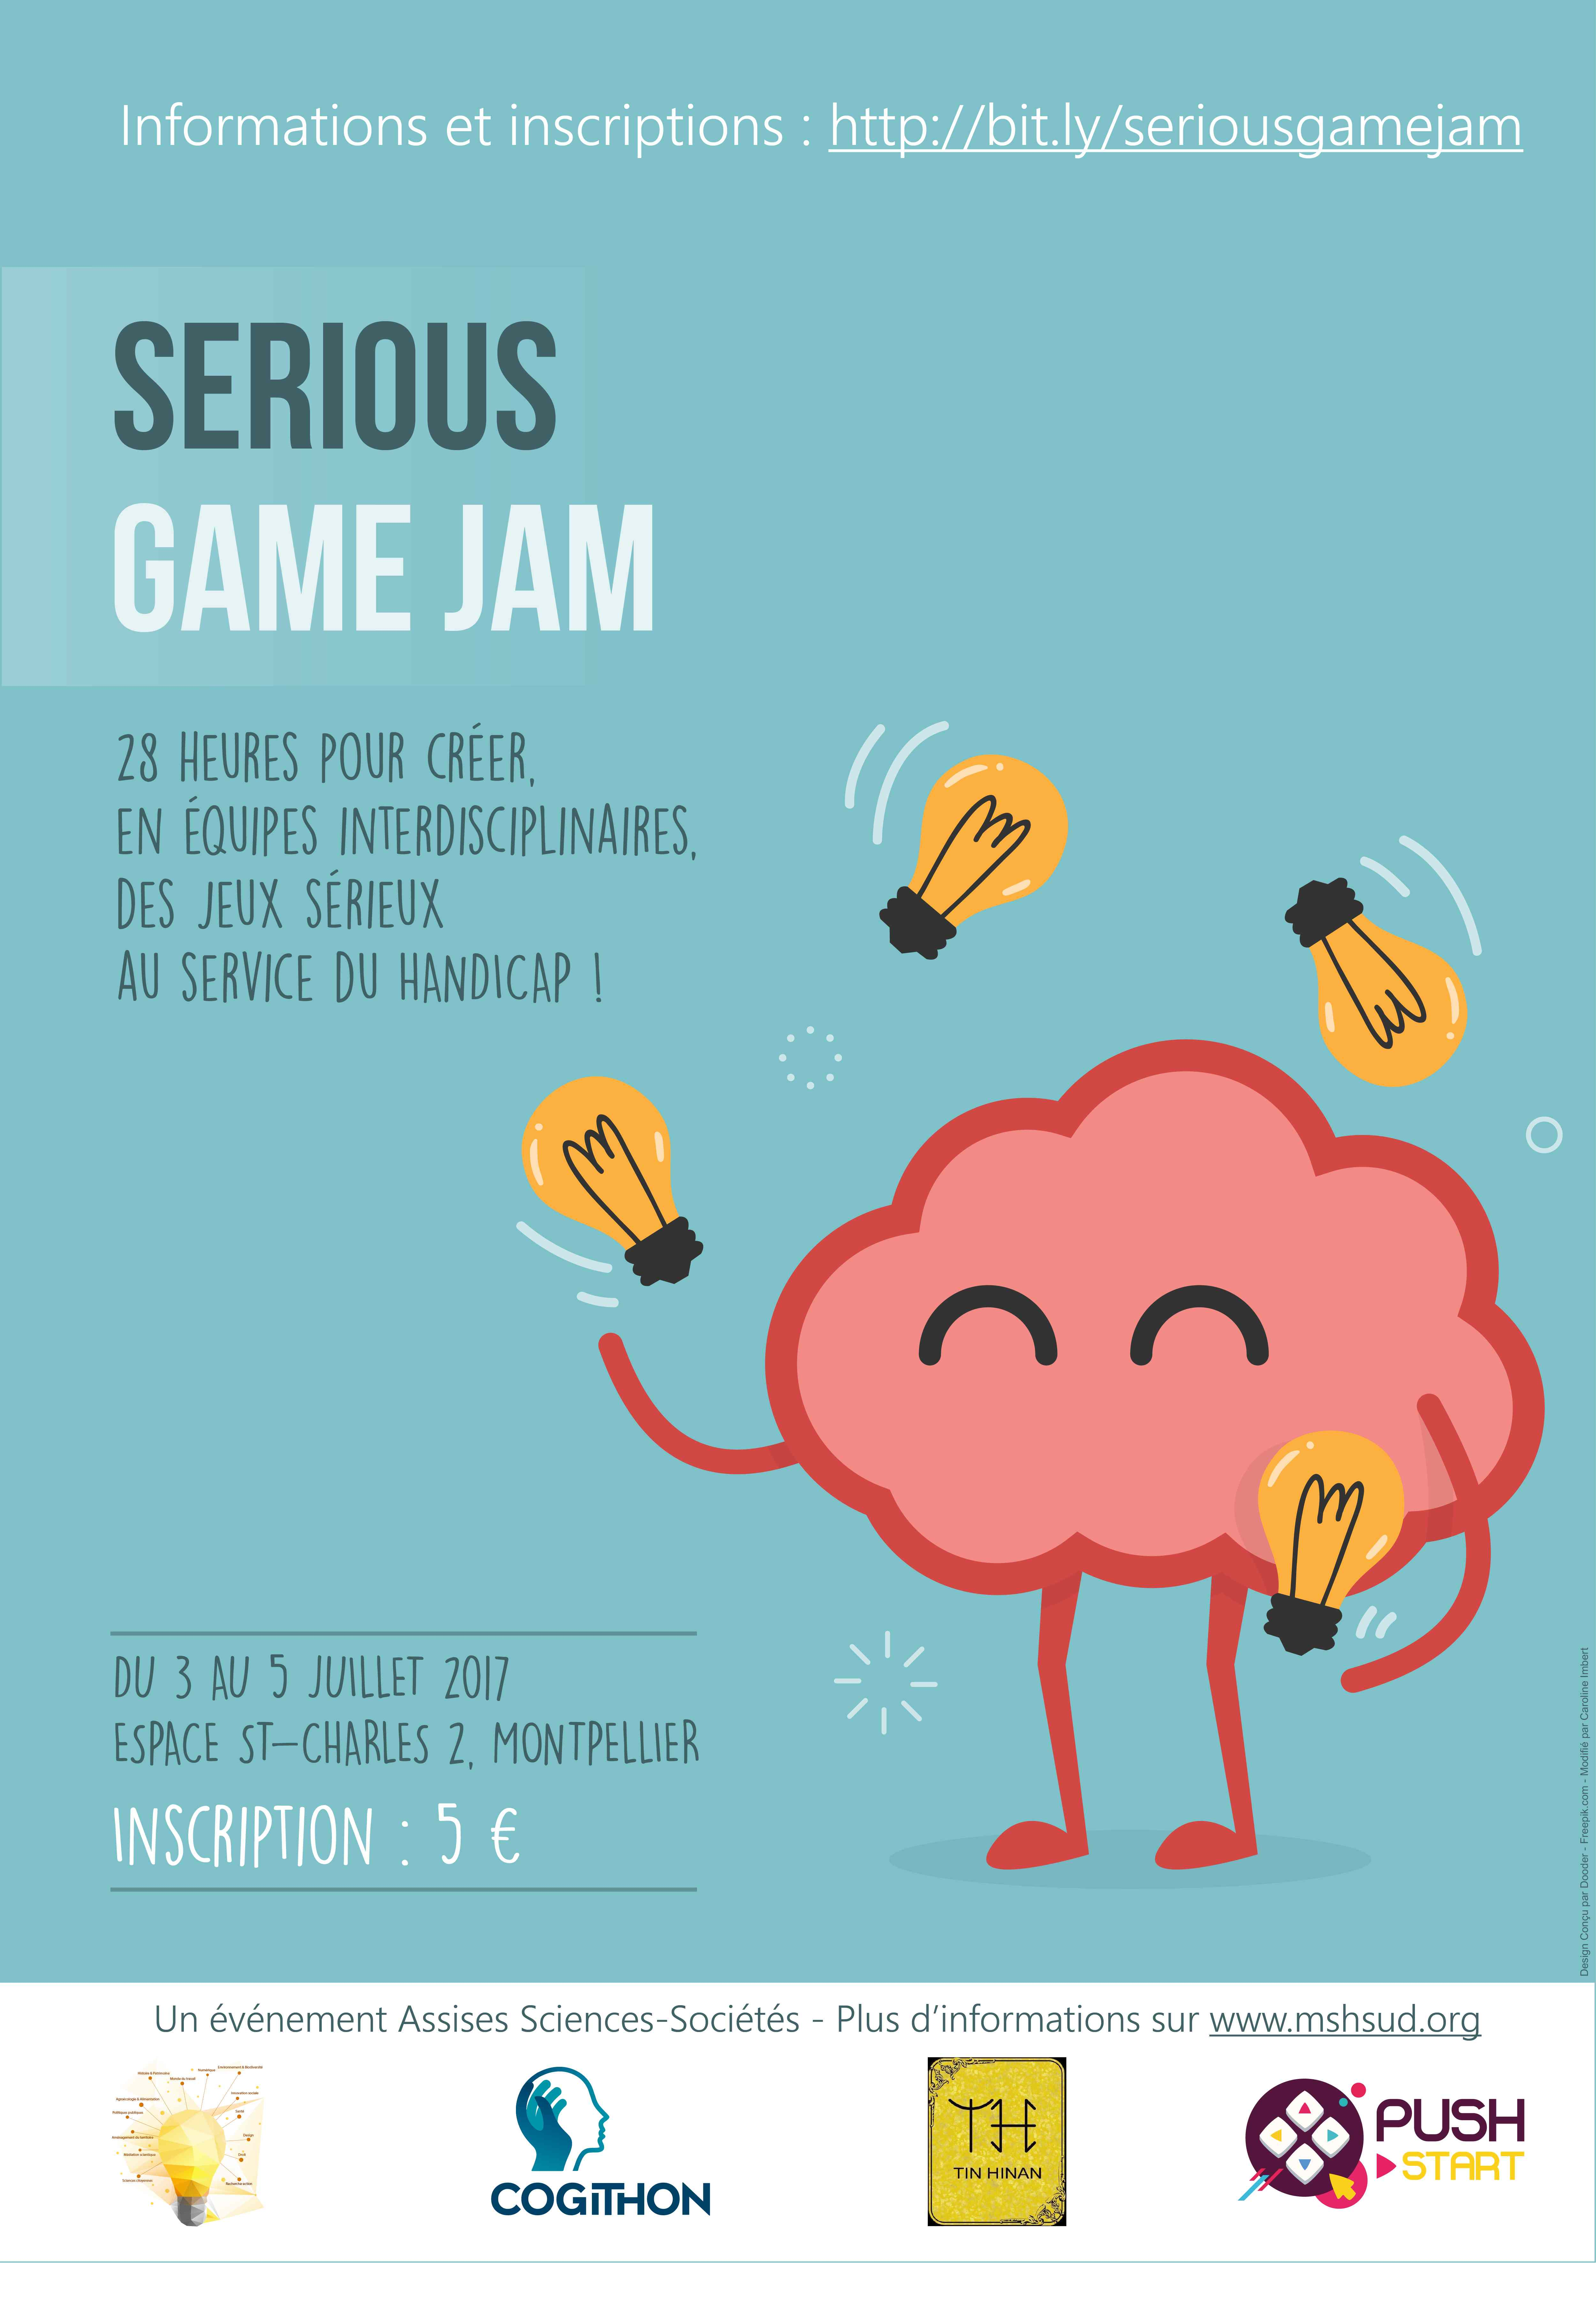 Proposition affiche 2 v2 - Serious Game Jam.jpg